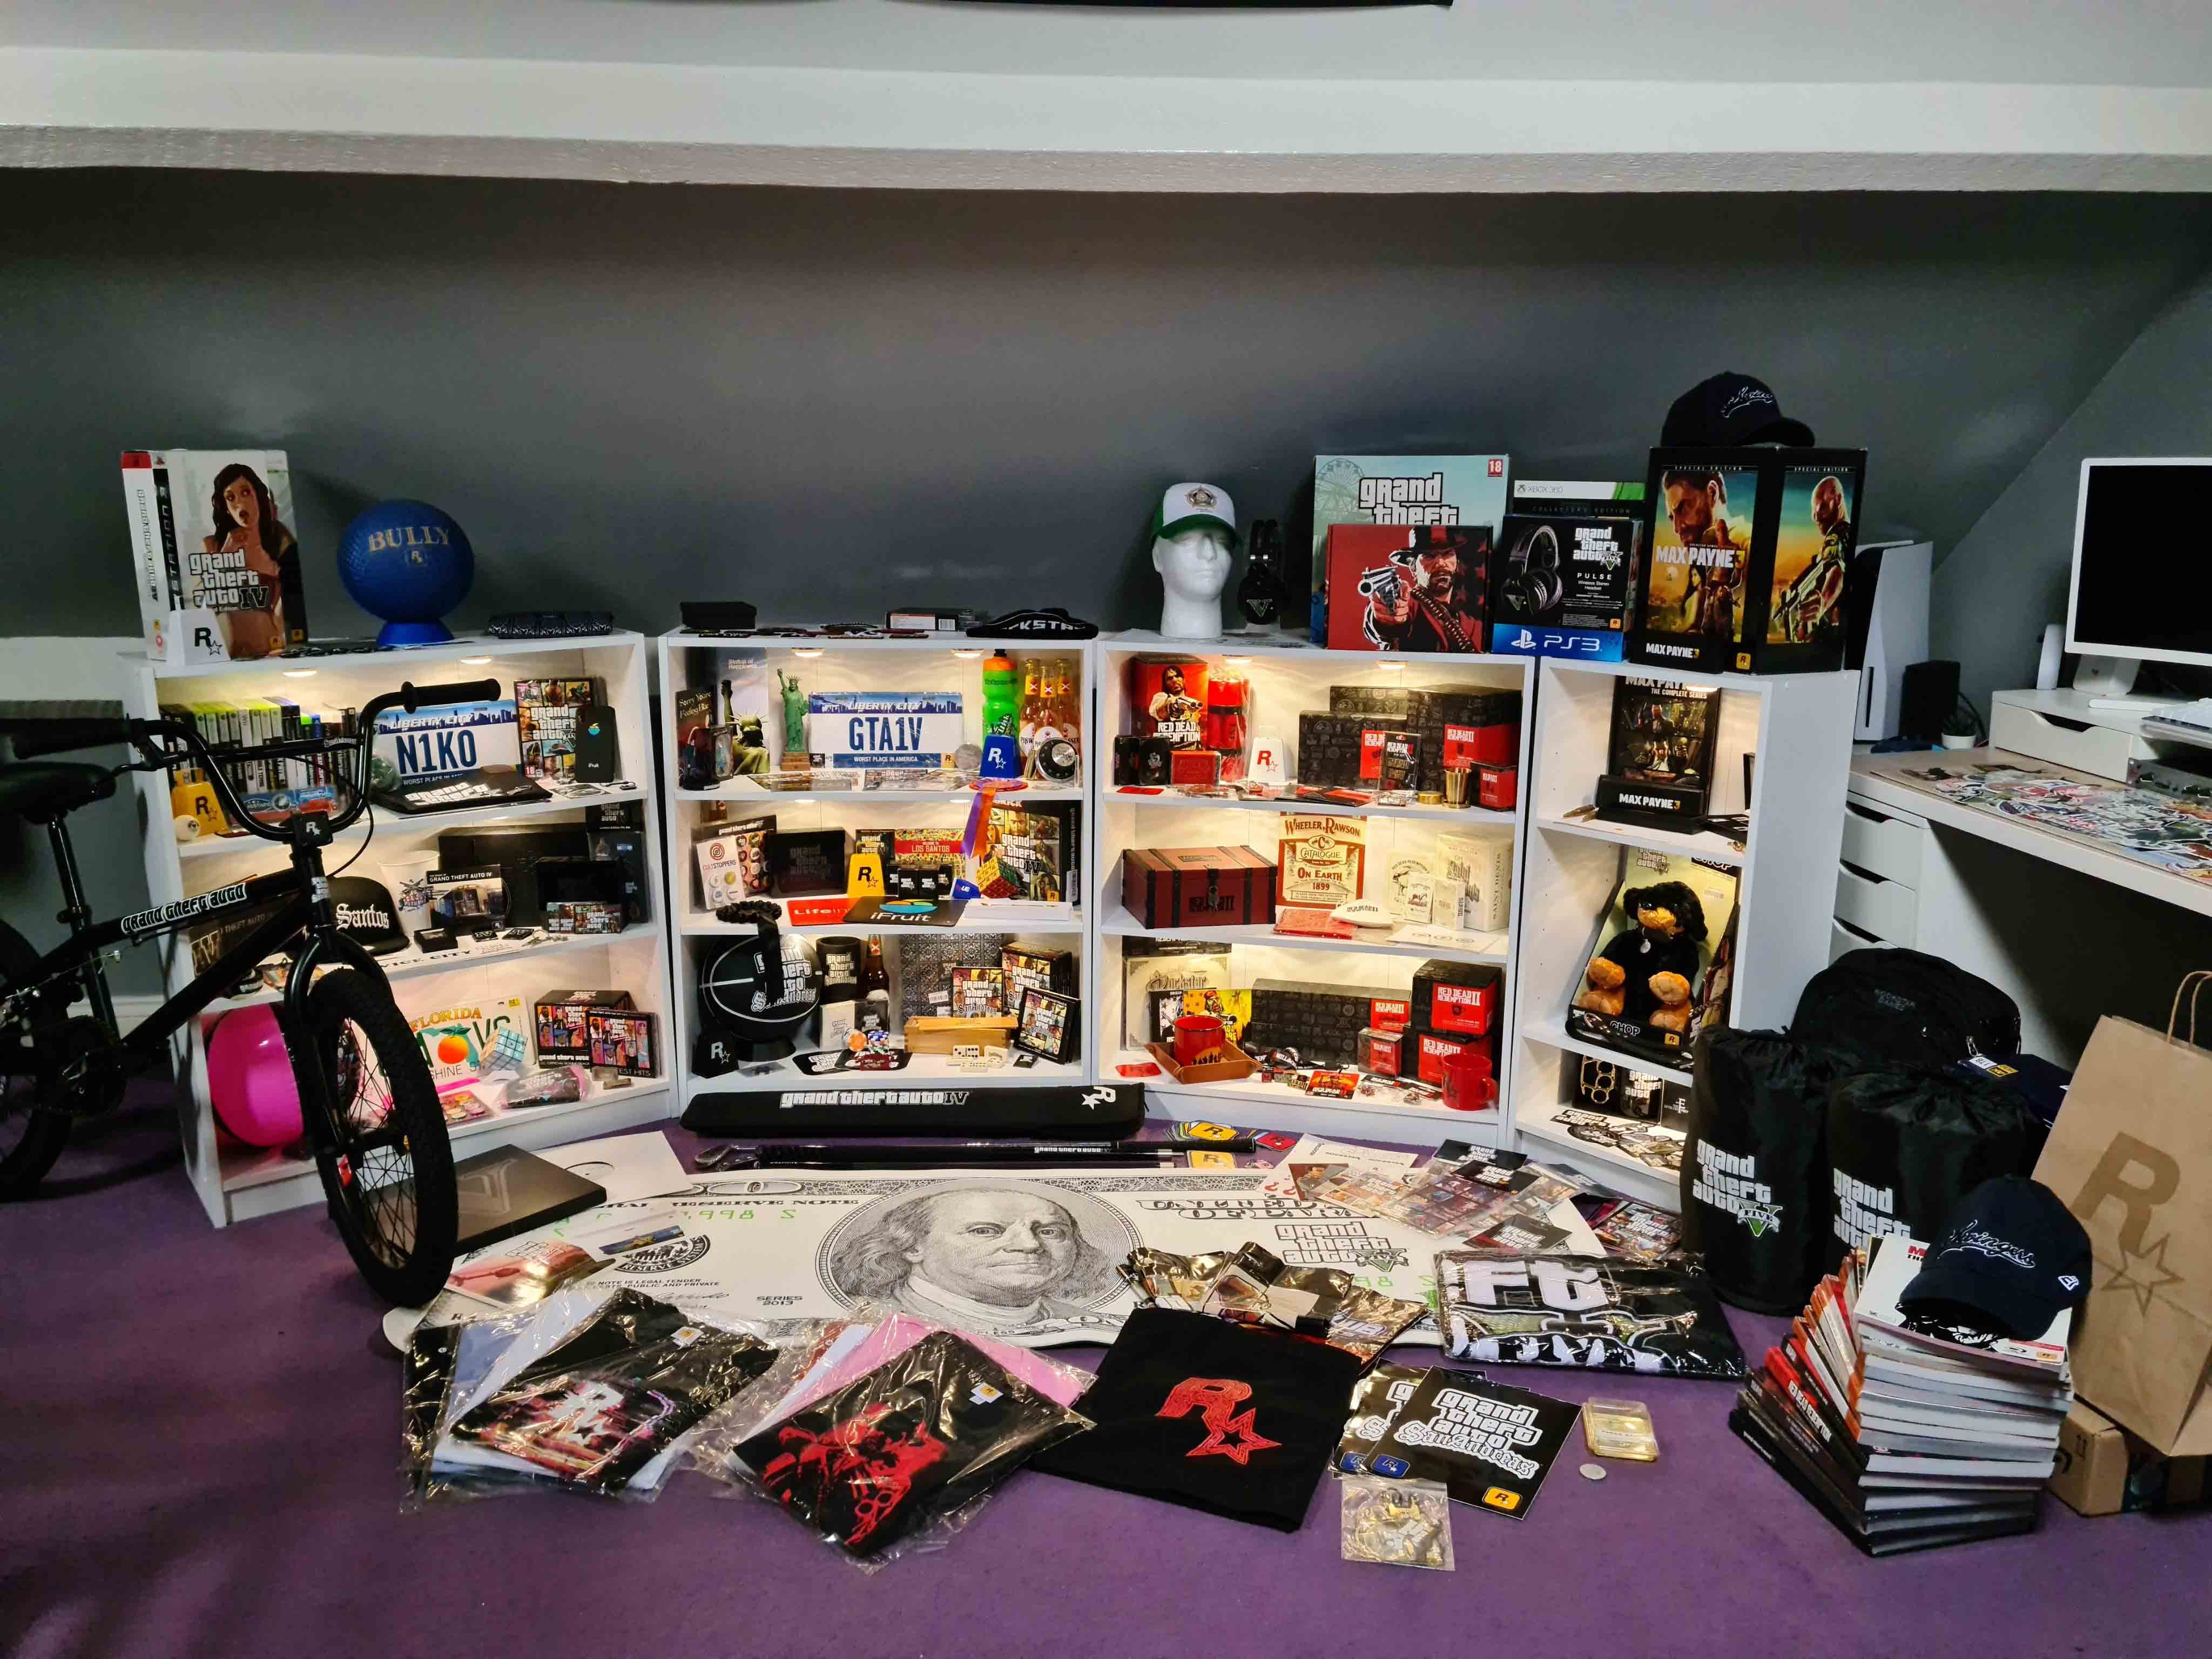 Interview with ROBHADD: Owner of One of the Biggest Rockstar Games Merchandise Collection